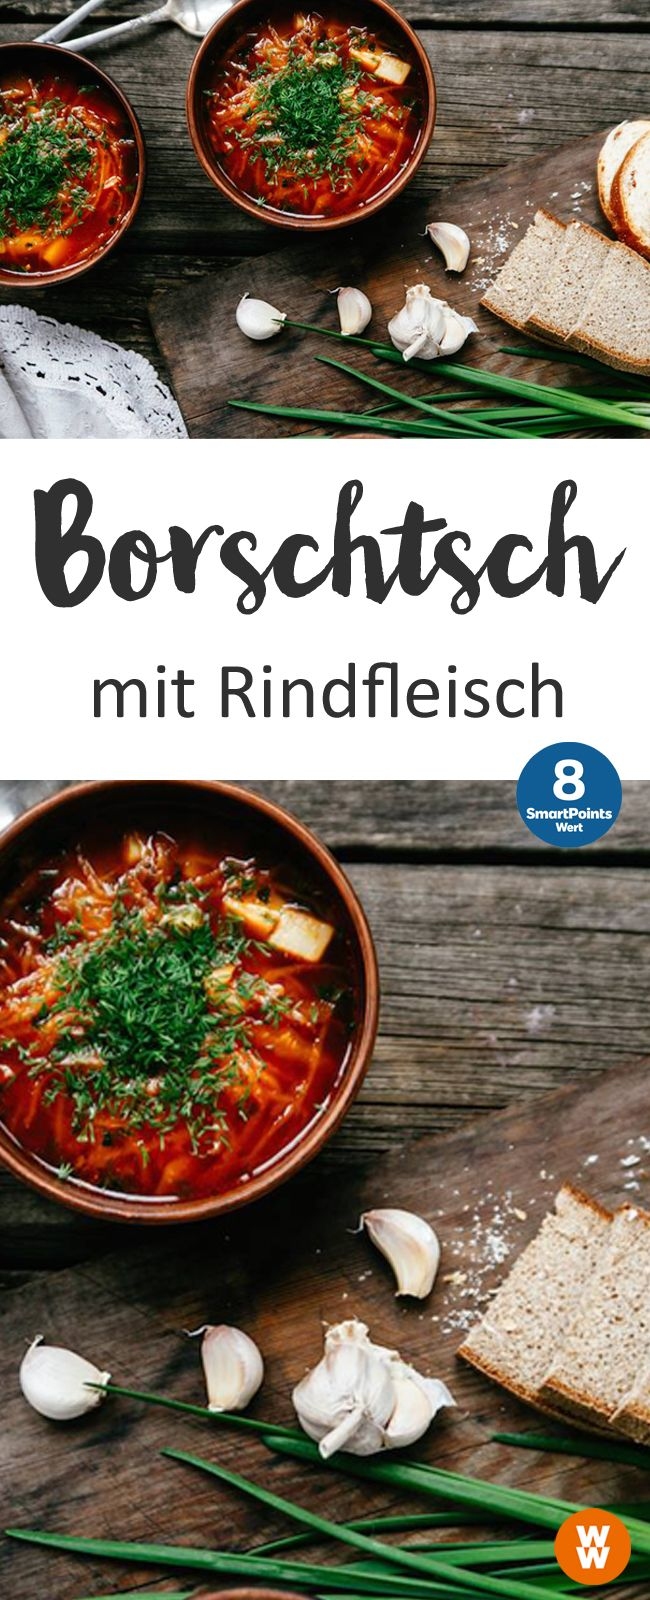 Borschtsch mit Rindfleisch | 4 Portionen, 8 SmartPoints/Portion, Weight Watchers, fertig in 80 min.